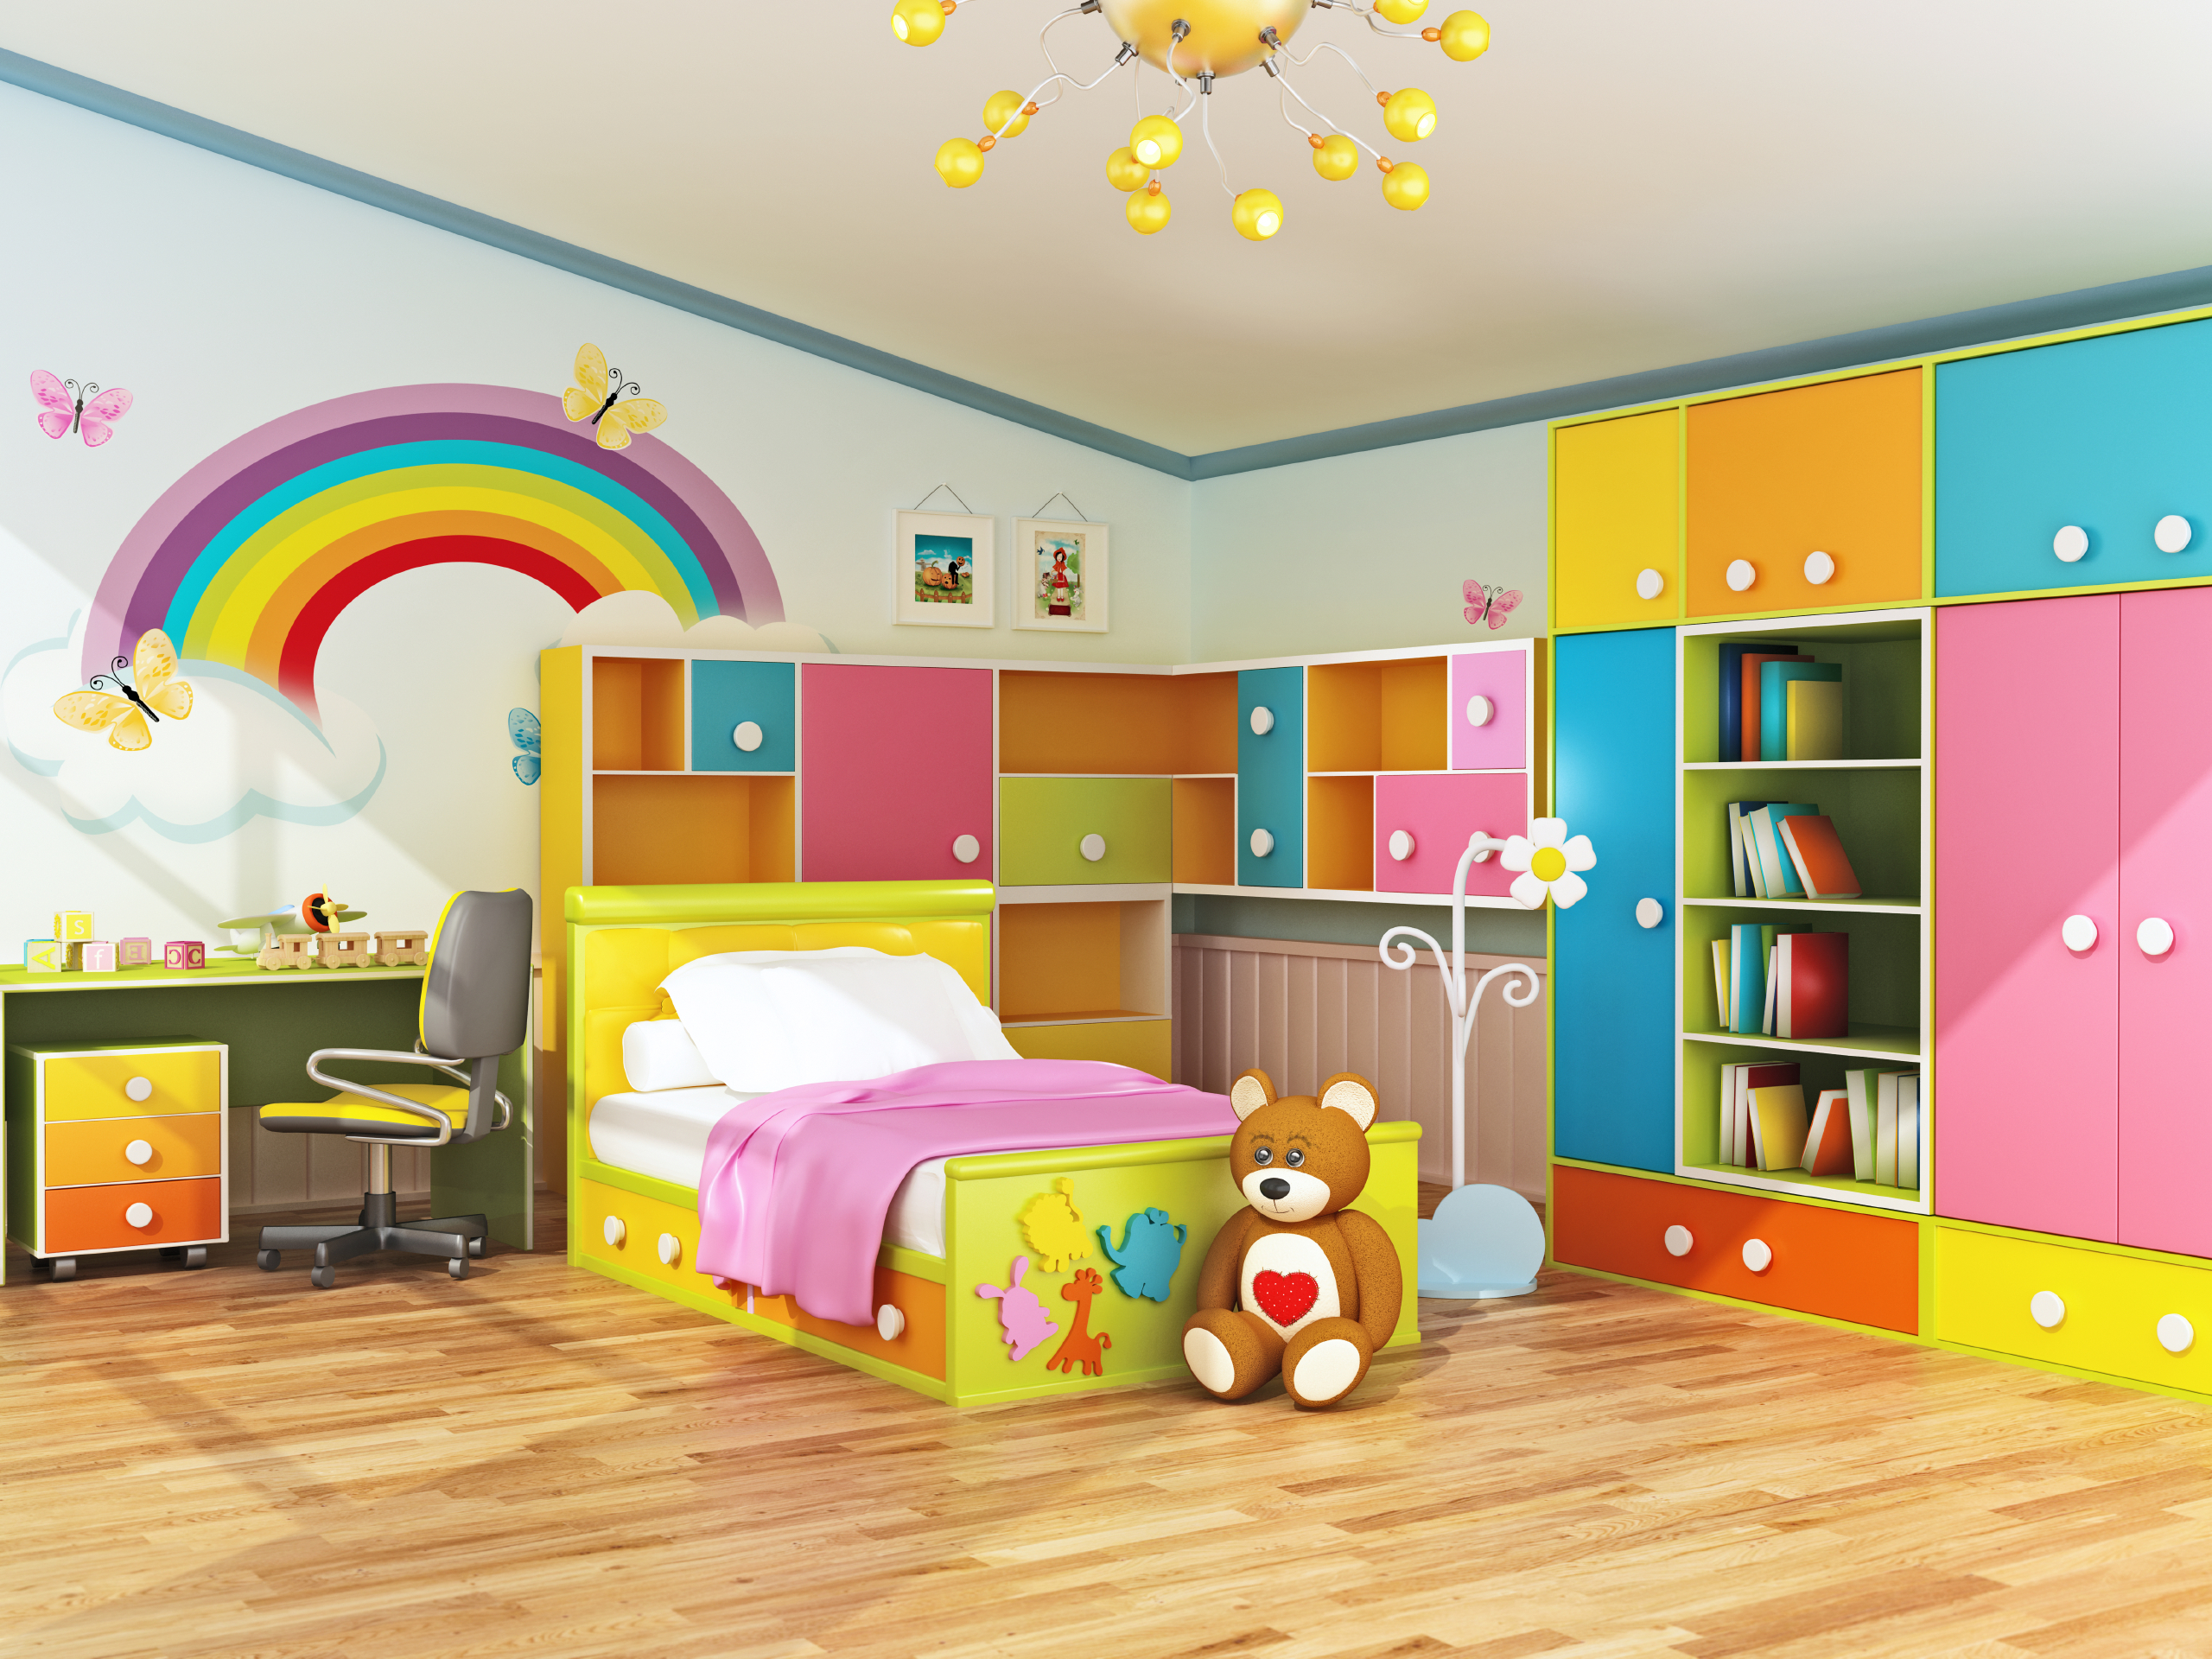 Plan ahead when decorating kids 39 bedrooms rismedia 39 s for Room decor ideas for toddlers